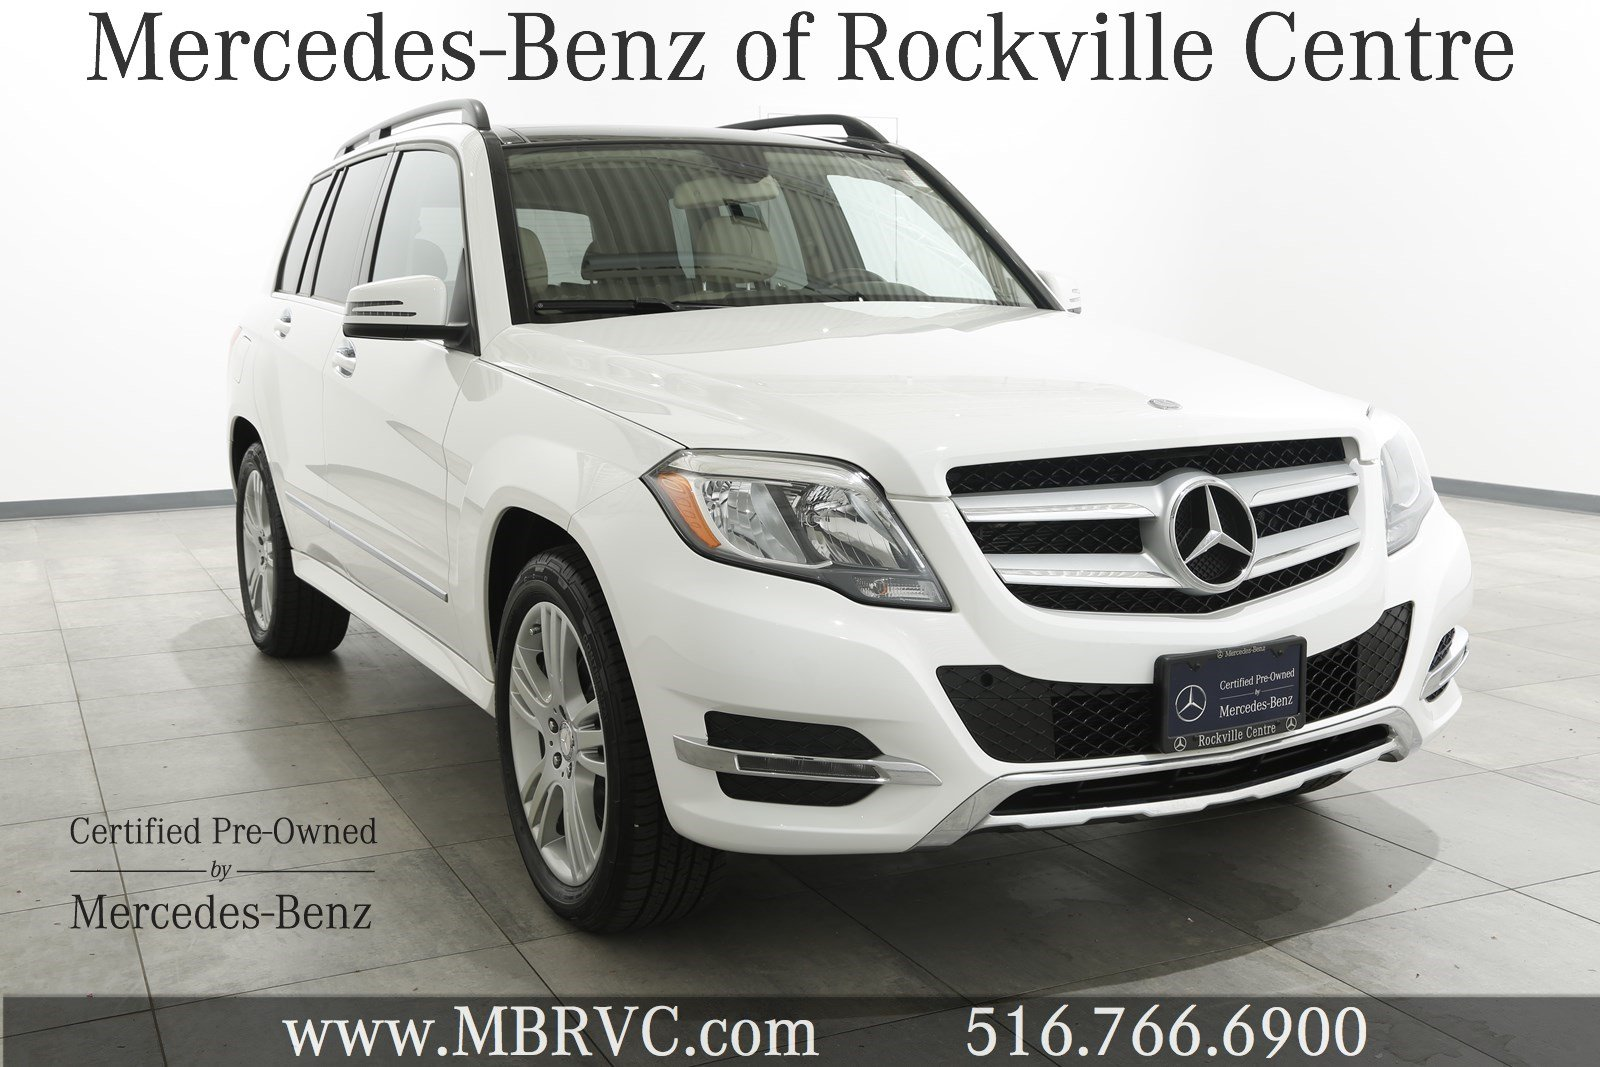 certified pre owned 2014 mercedes benz glk glk 350 suv in rockville centre 5208 mercedes benz. Black Bedroom Furniture Sets. Home Design Ideas